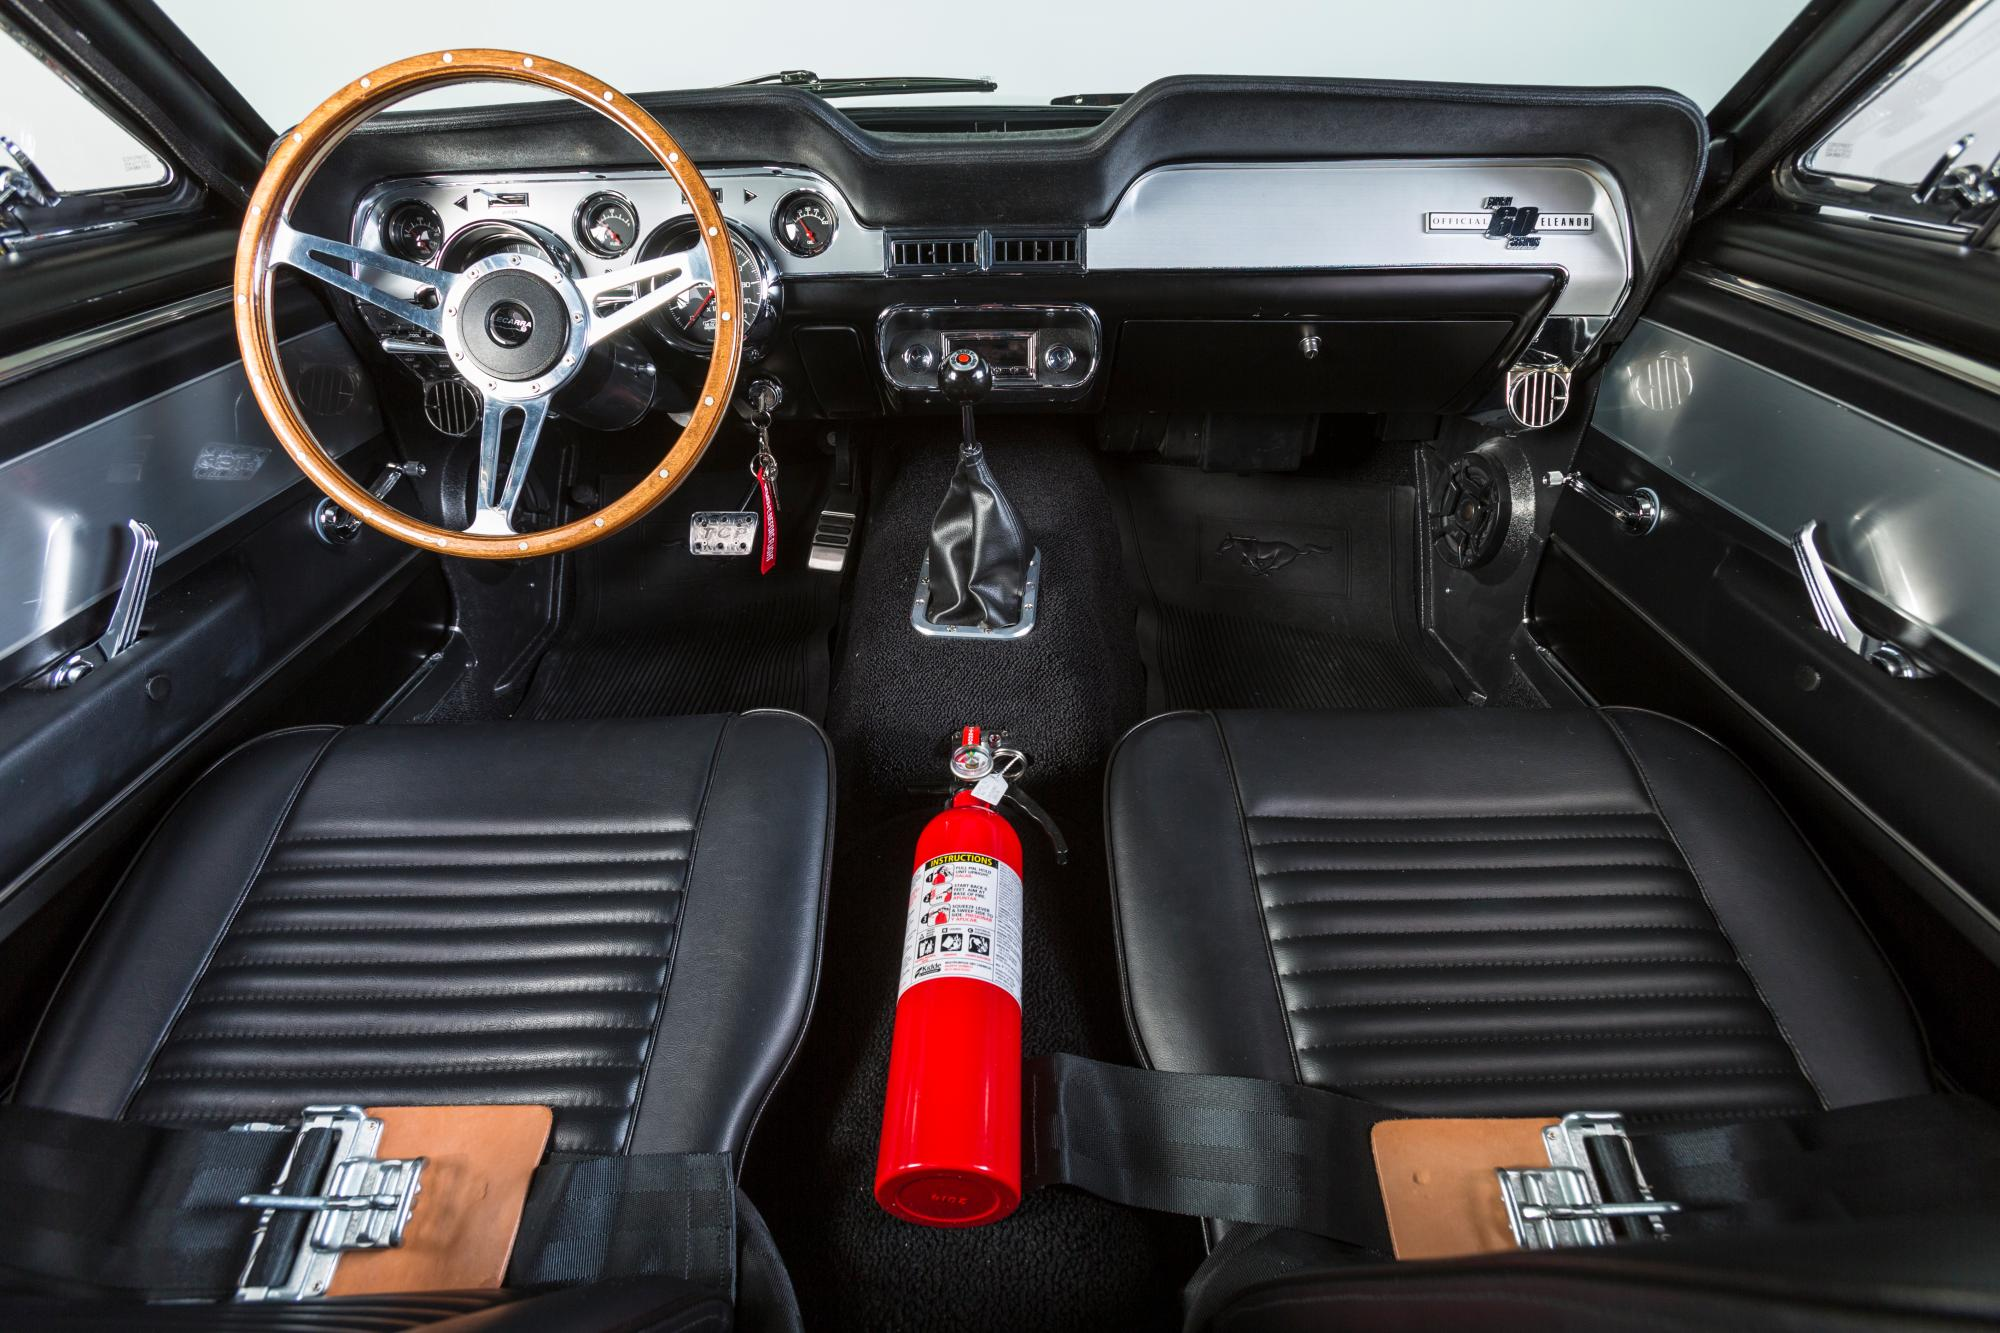 Interior Eleanor Mustang Official Licensed Gone In 60 Seconds Builder 1967 Ford Mustang Fastback For Sale Buy Gt 500 E Super Car Cobra Snake Tribute Replica Clone Tulsa Oklahoma